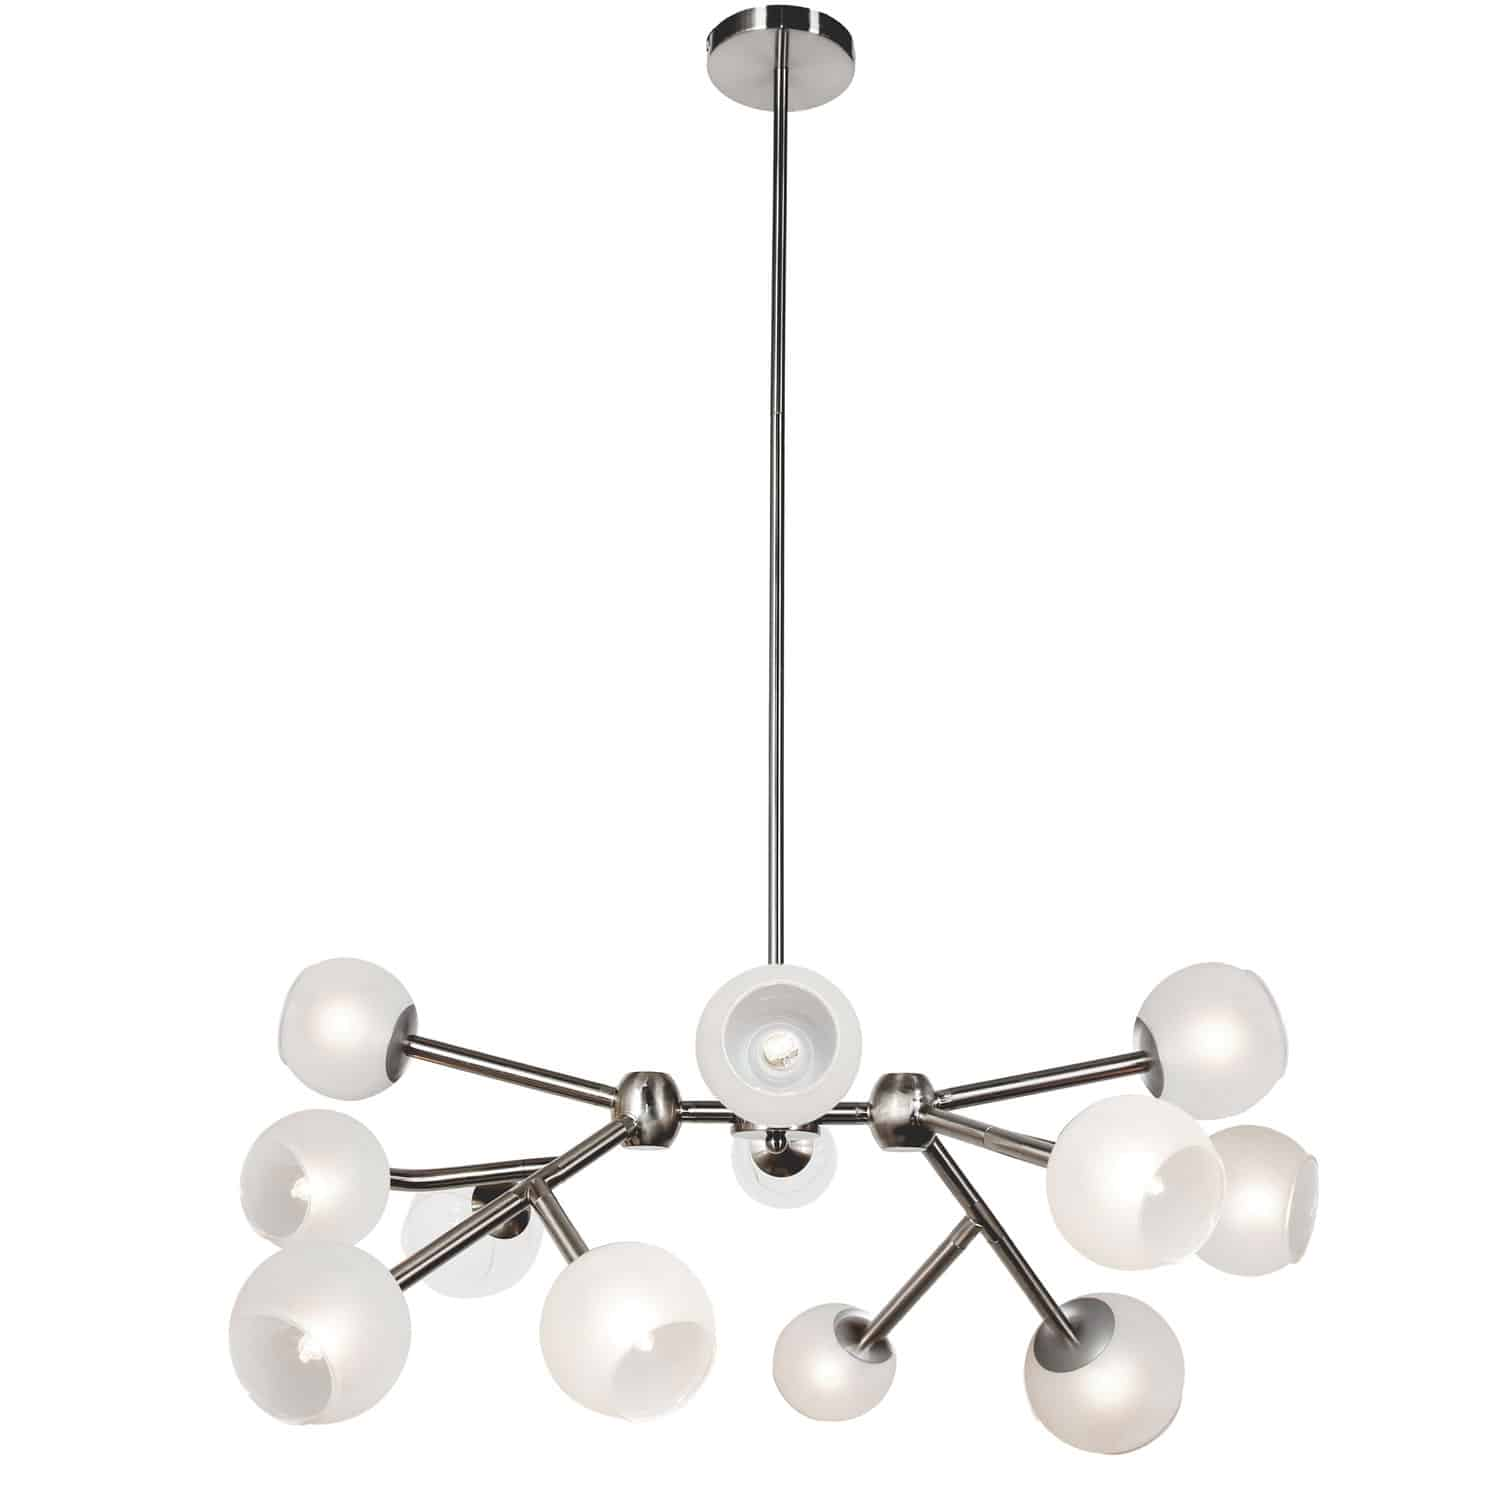 12 Light Halogen Chandelier, Satin Chrome Finish with Frosted Glass